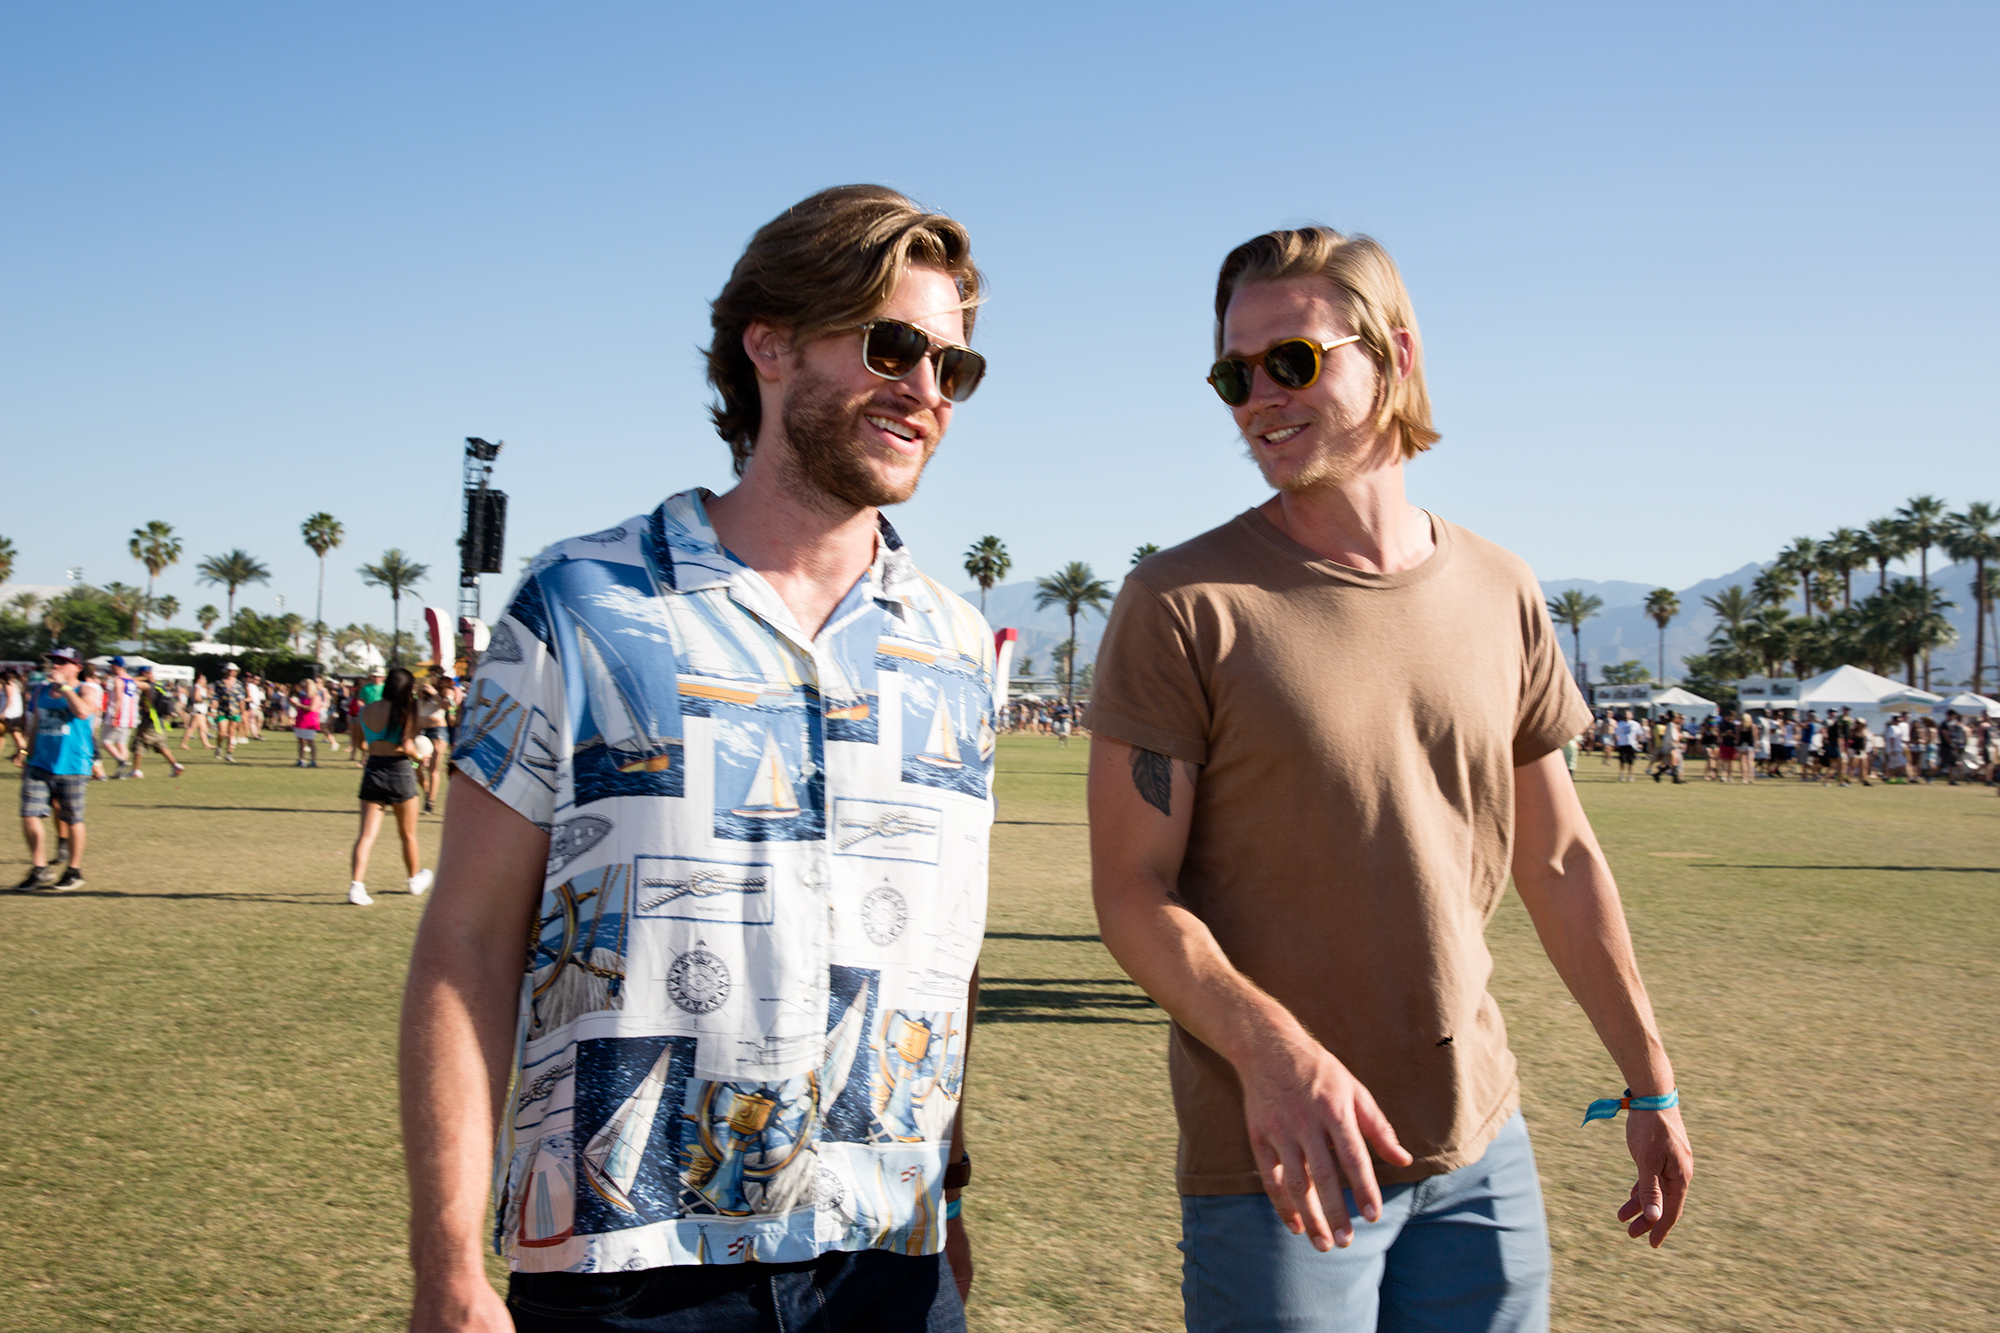 Jamestown Revival's Jonathan Clay and Zach Chance walk to the artist compound on April 18, 2015. Mr. Clay and Mr. Chance grew up together in the small Texas town of Magnolia. This year is their Coachella debut.  Originally published by The Wall Street Journal, as part of their story  ' Behind the Scenes at Coachella With Jamestown Revival.'